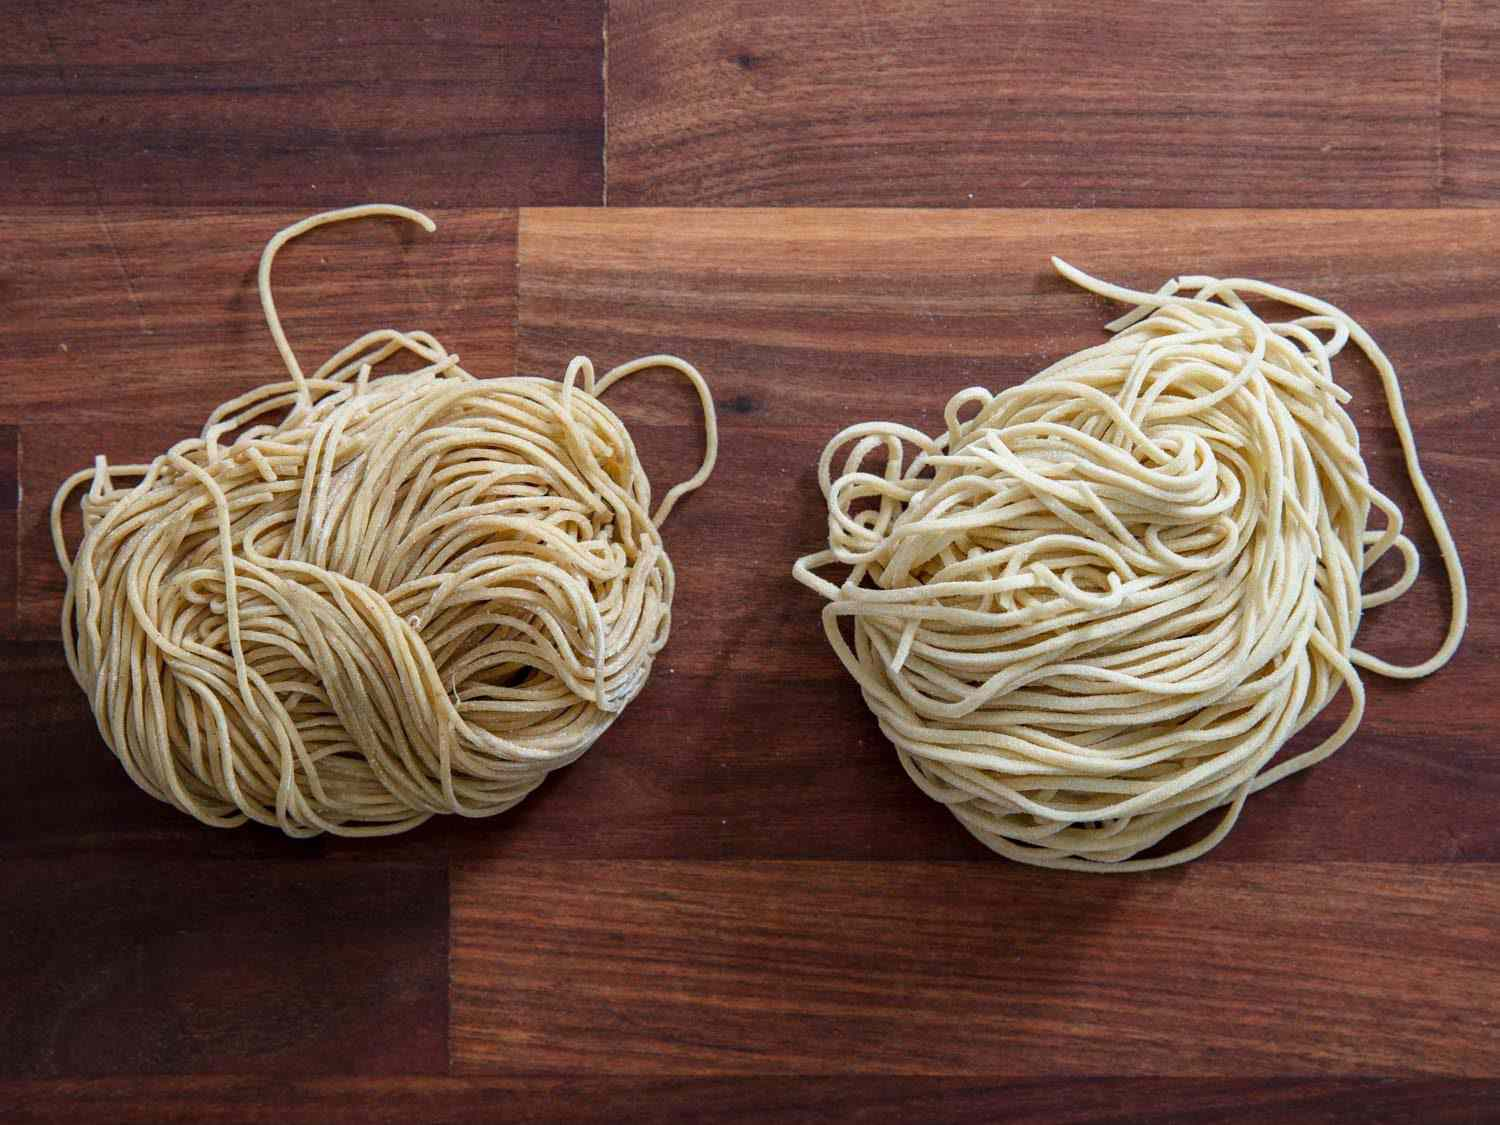 Shimamoto Noodles ramen and homemade ramen side by side